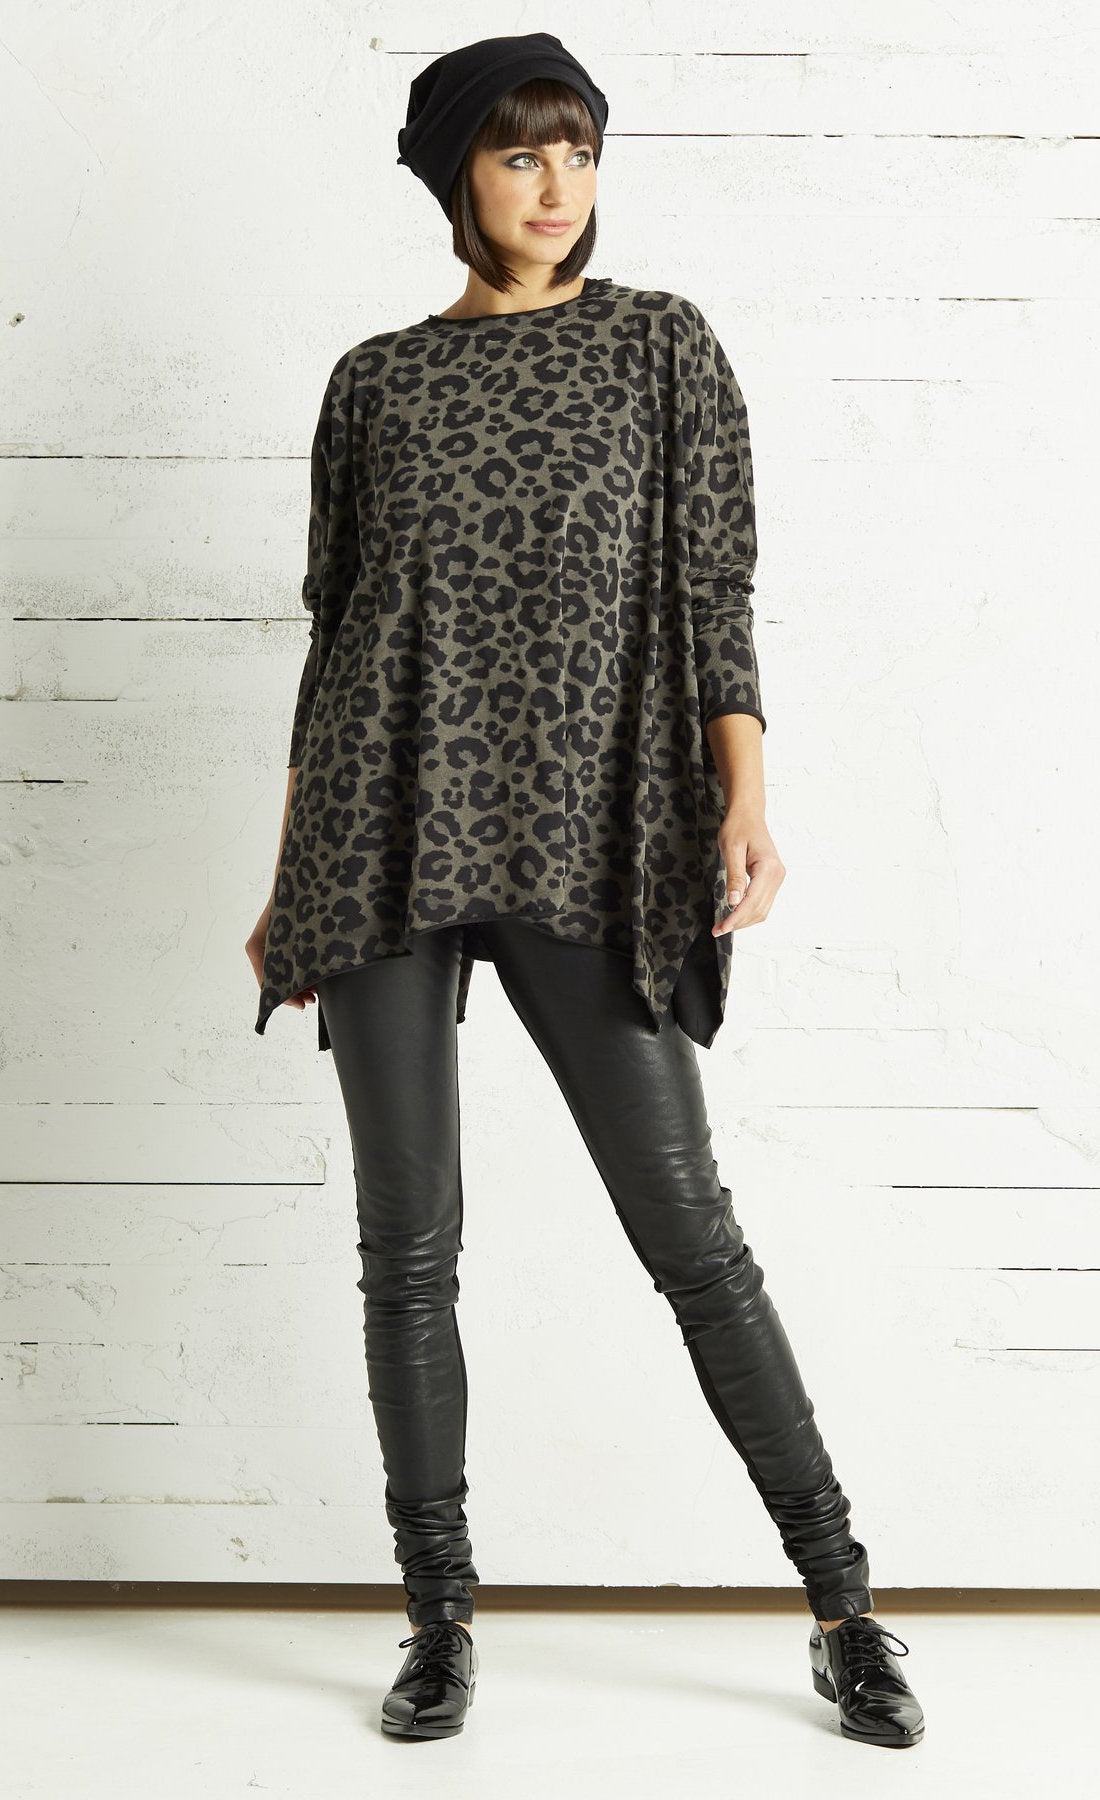 Planet Leopard Swing Top